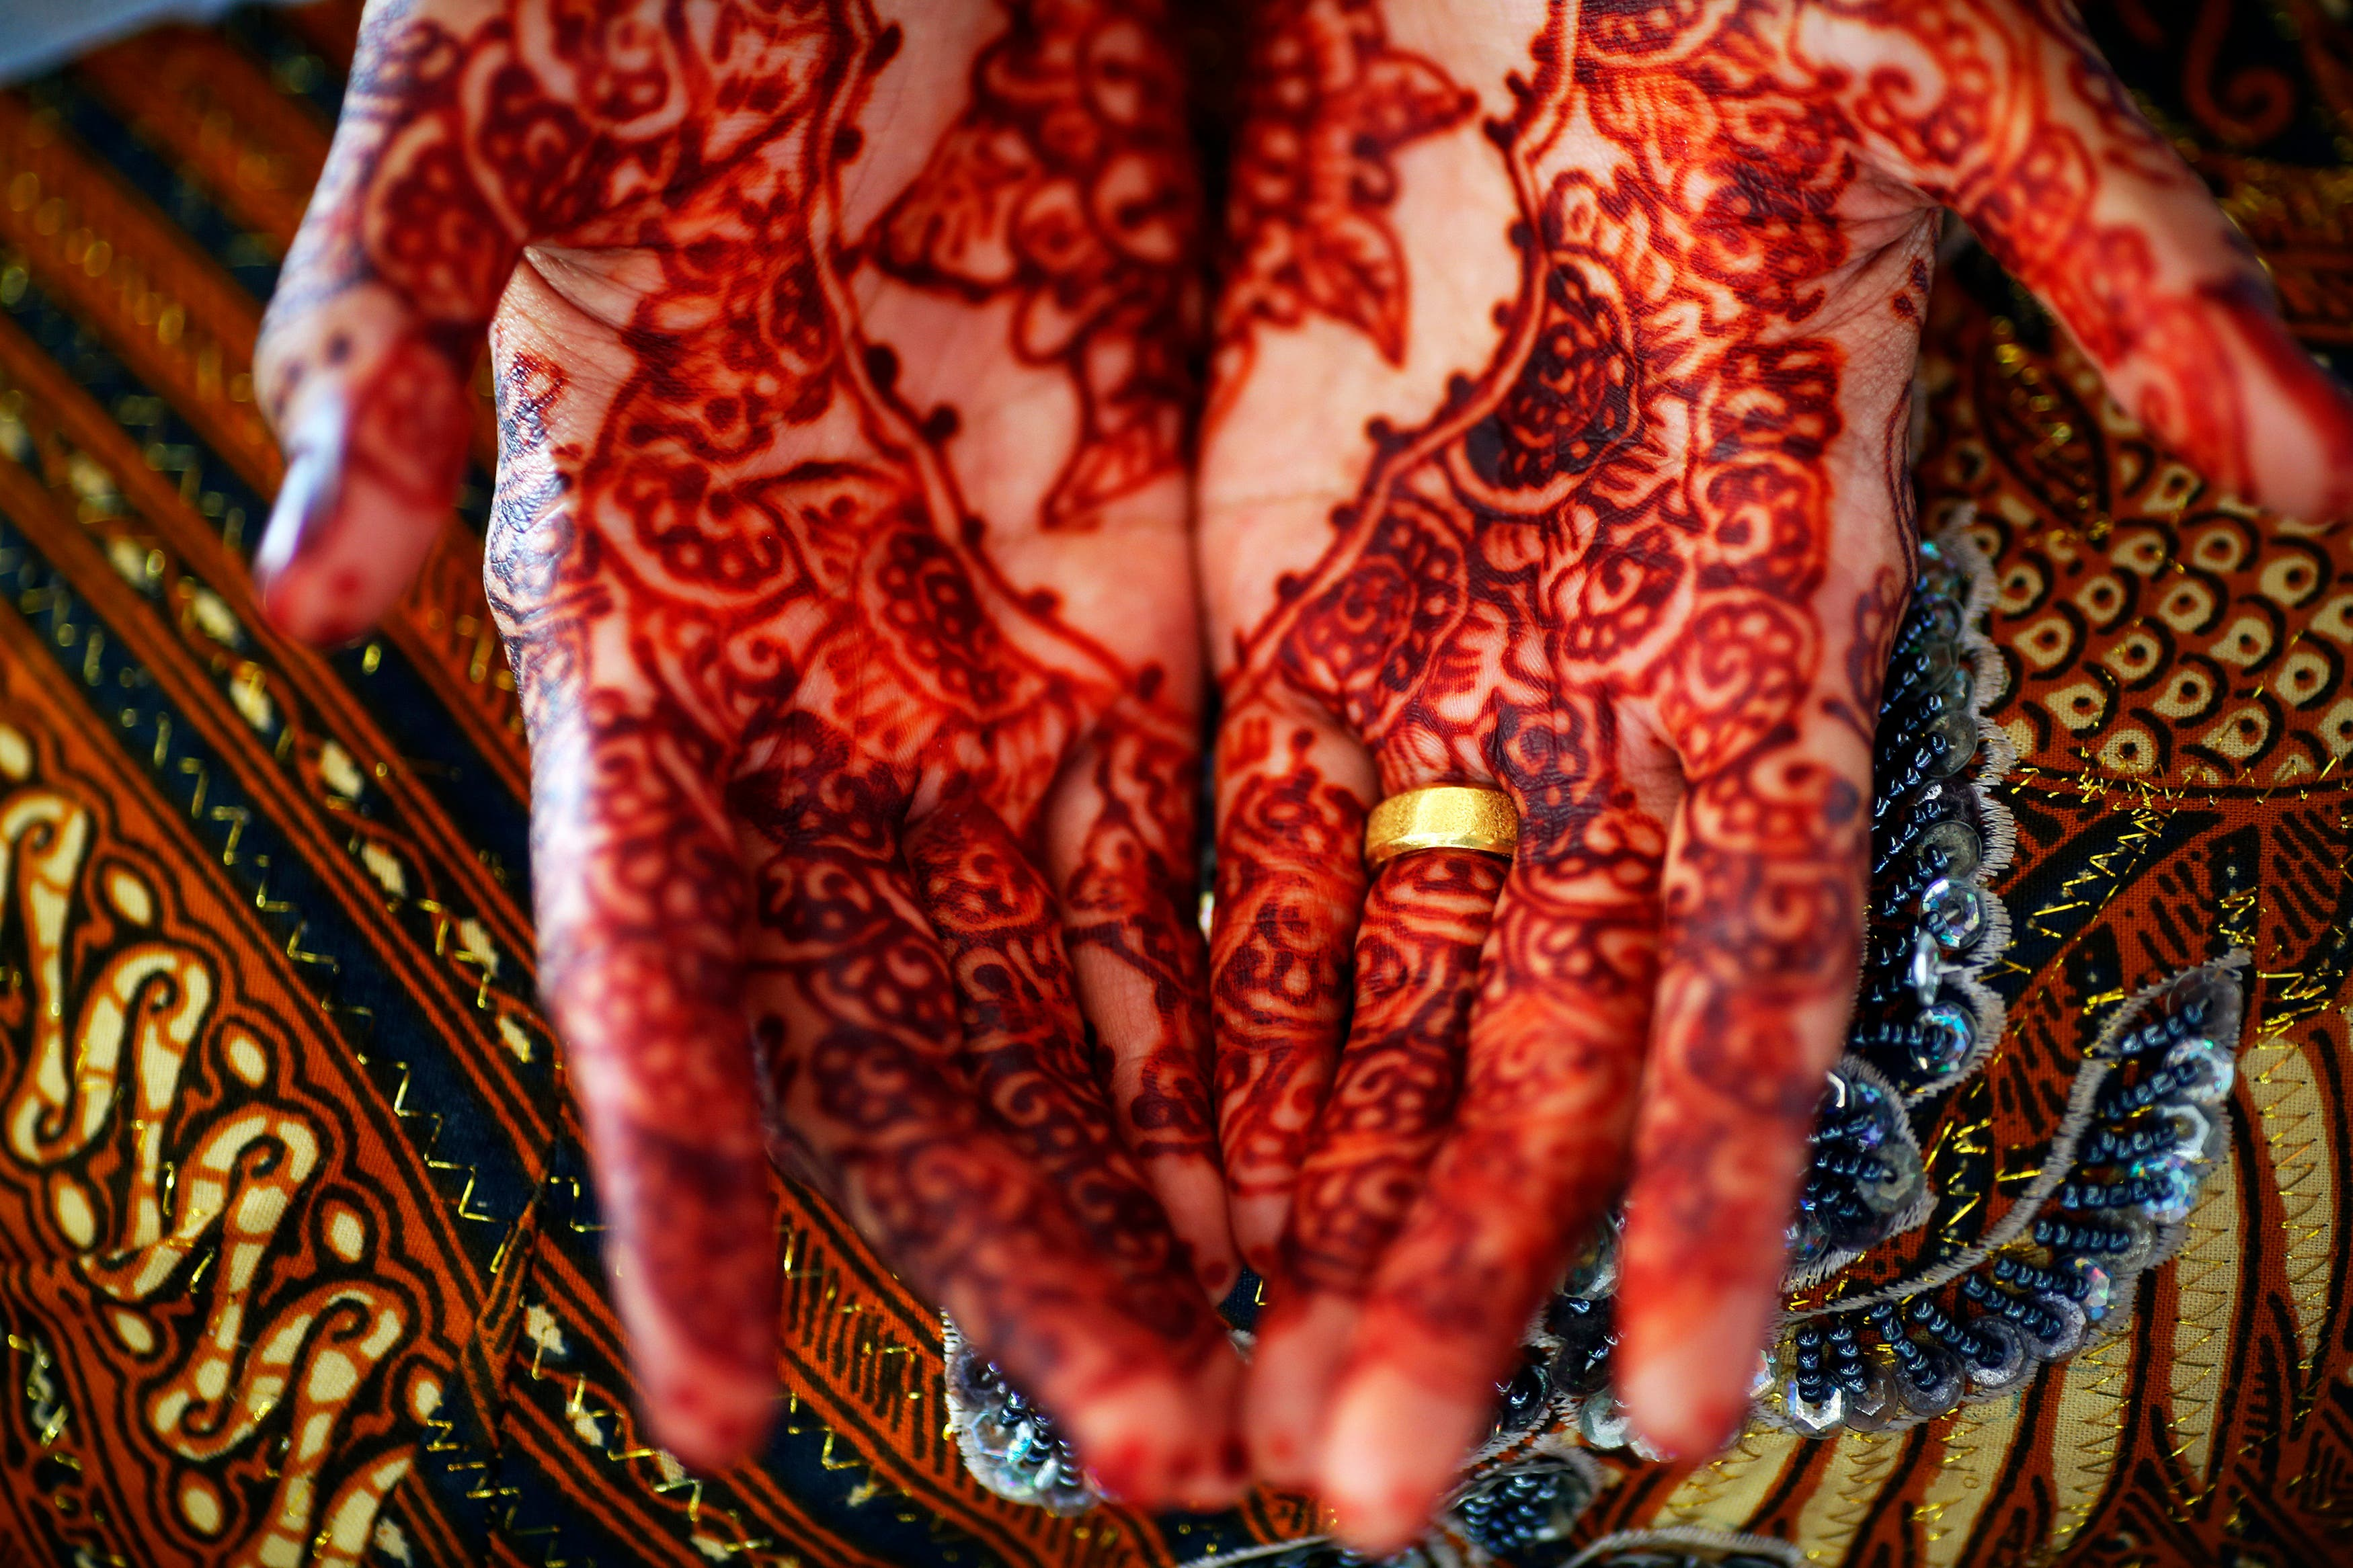 Henna Party Gifts : From henna to honeymoon wedding traditions in the middle east